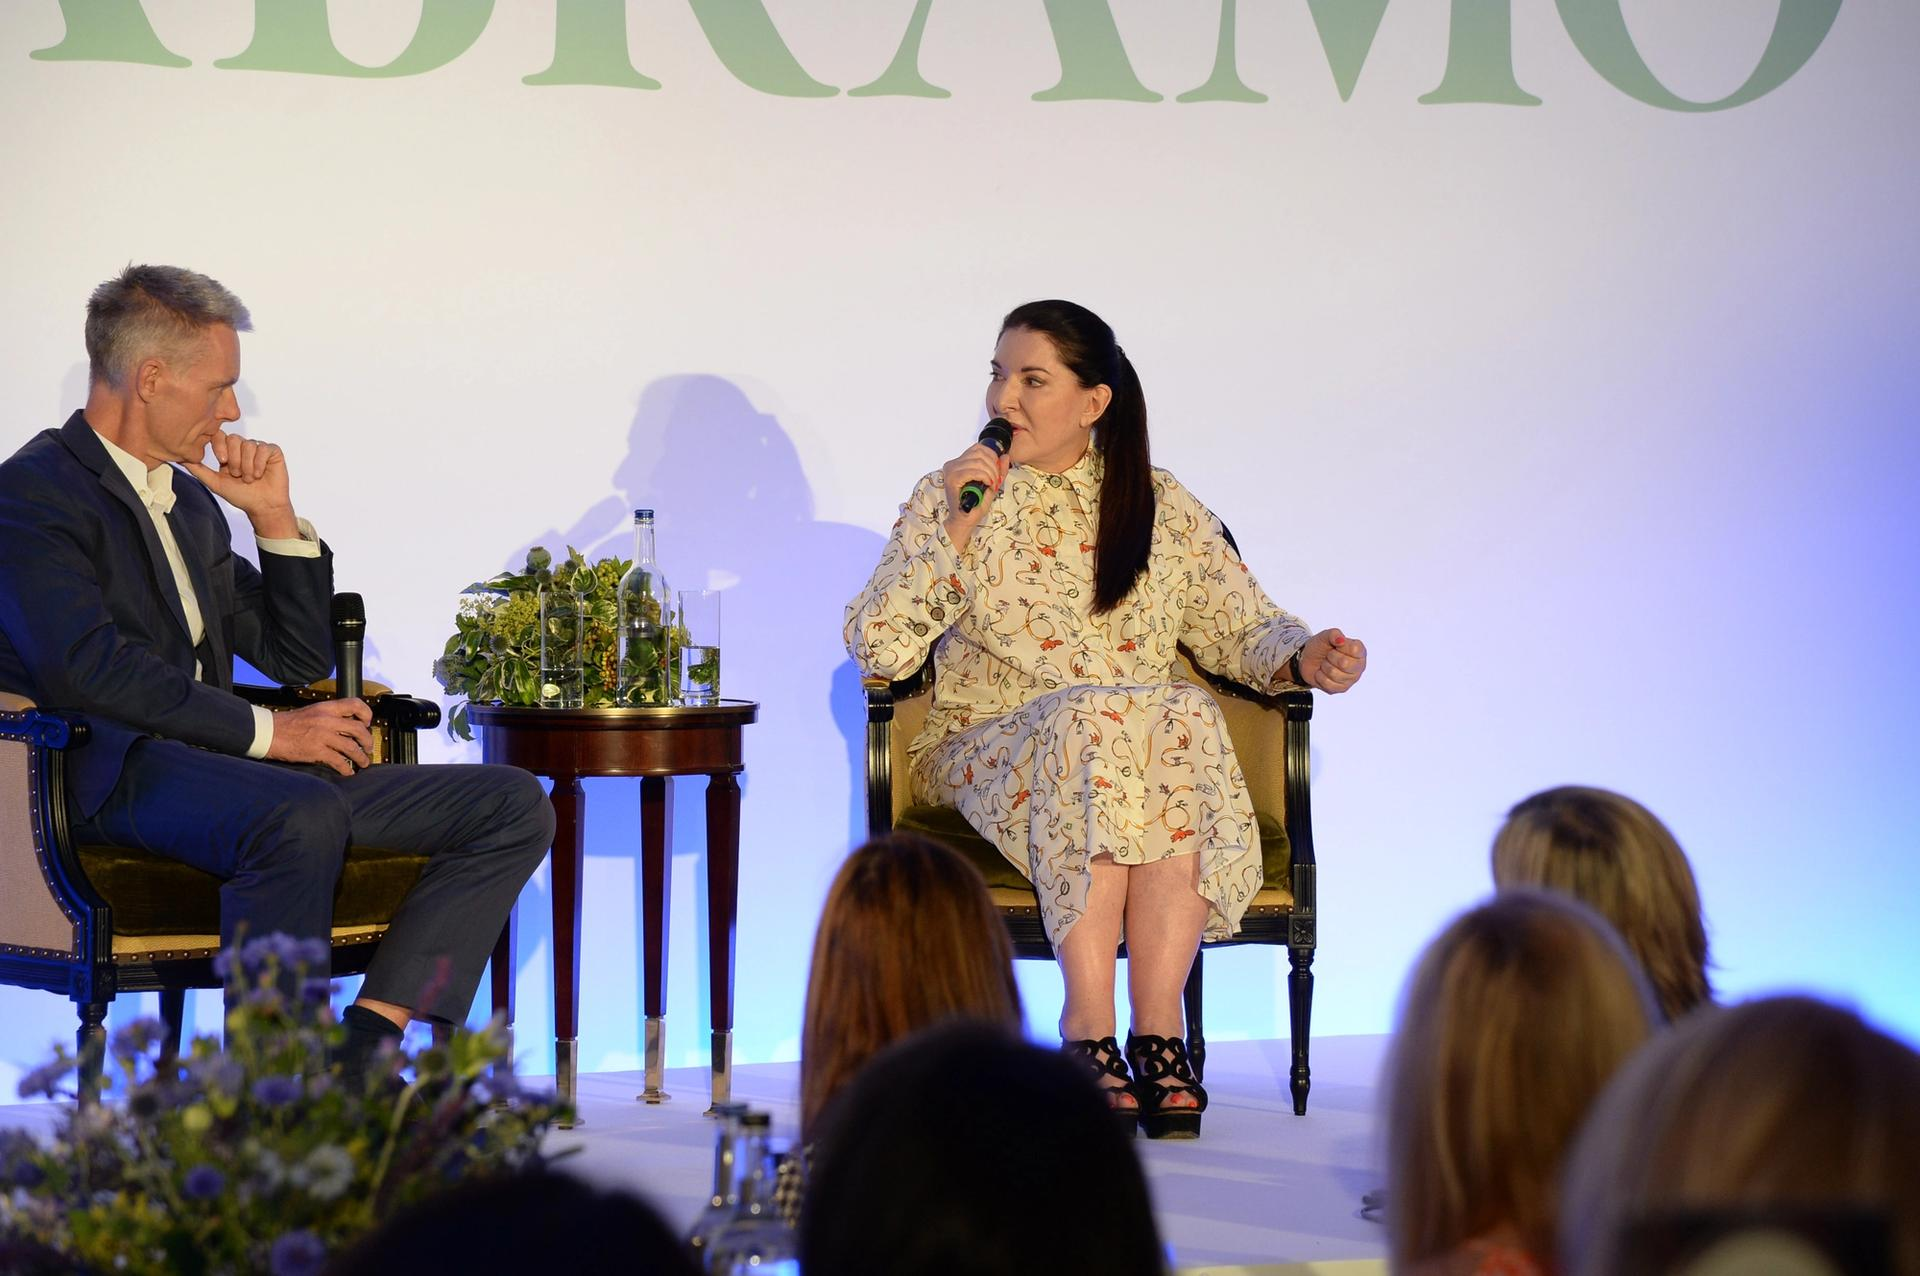 Marina Abramovic has been spending increasing amounts of time with the Royal Academy's creative director Tim Marlow BFAMI and Hannah Young